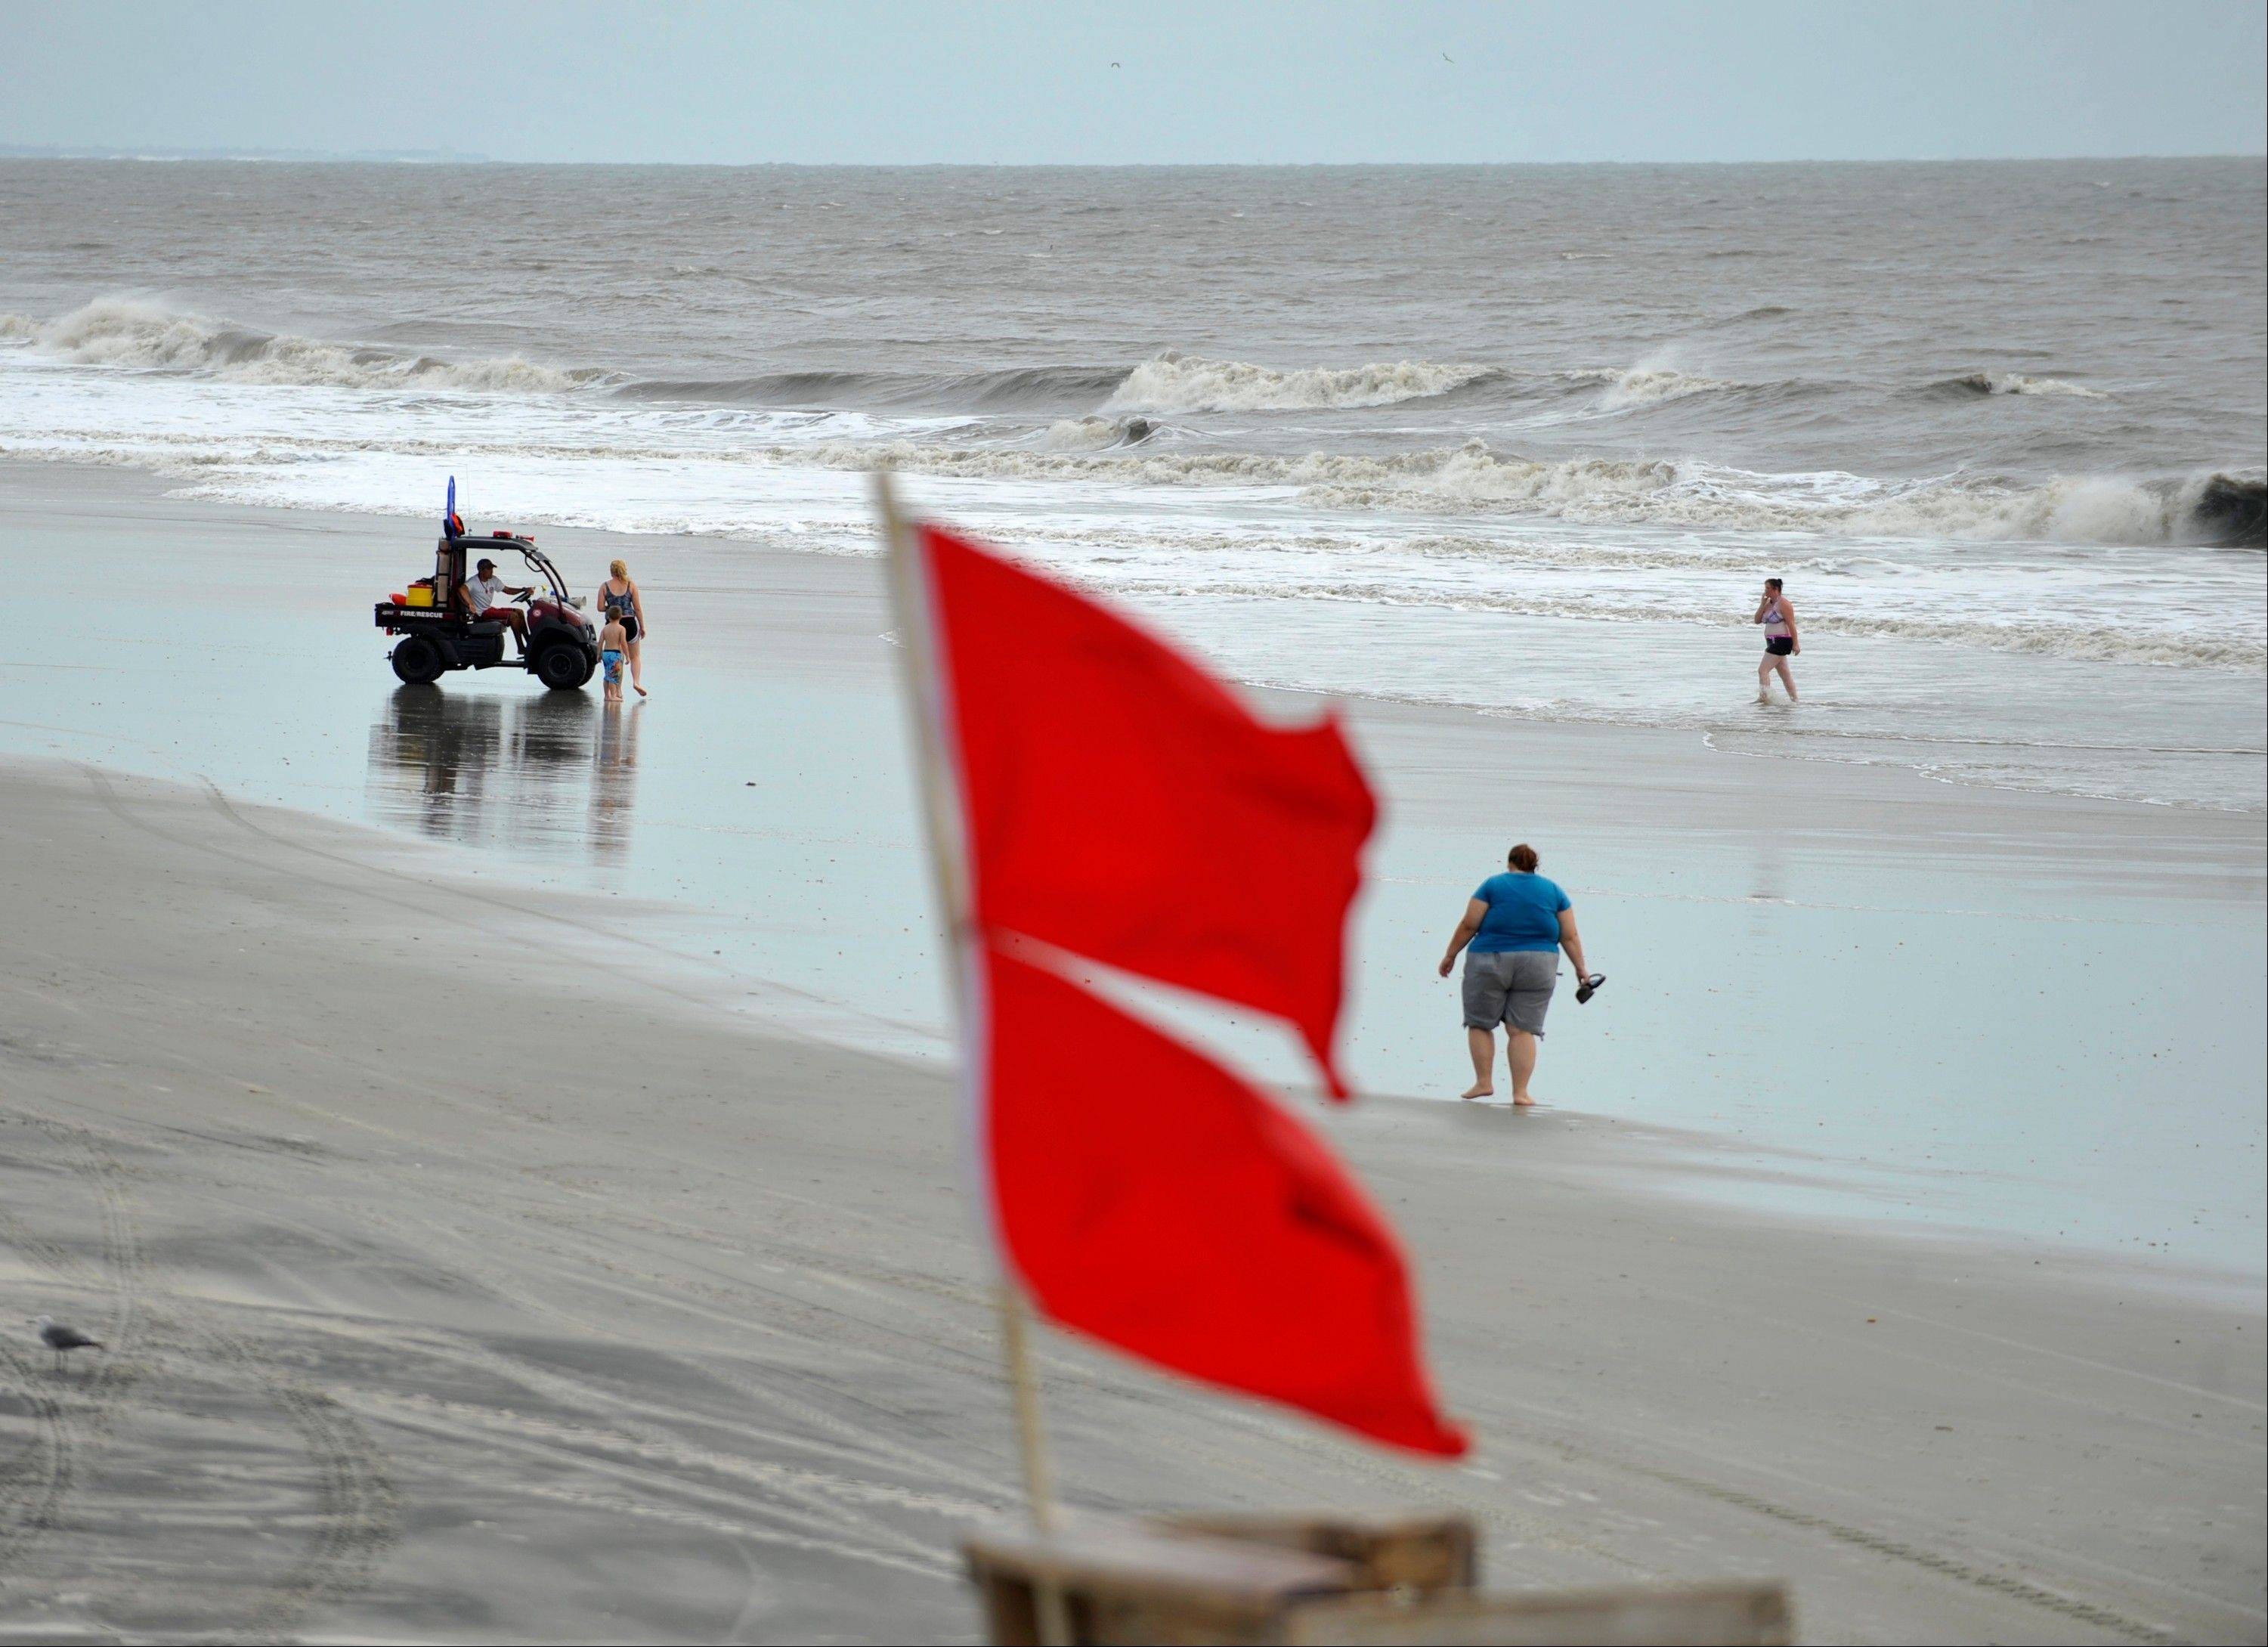 A member of the Tybee Island Ocean Rescue team closes the water to swimmers in Tybee Island, Ga., Friday, Aug. 26, 2011. Due to high waves and hazardous rip currents from the outer bands of Hurricane Irene, the lifeguards decided to close the water to swimmers. Surfers, kayakers and paddle boarders still brave the waves.